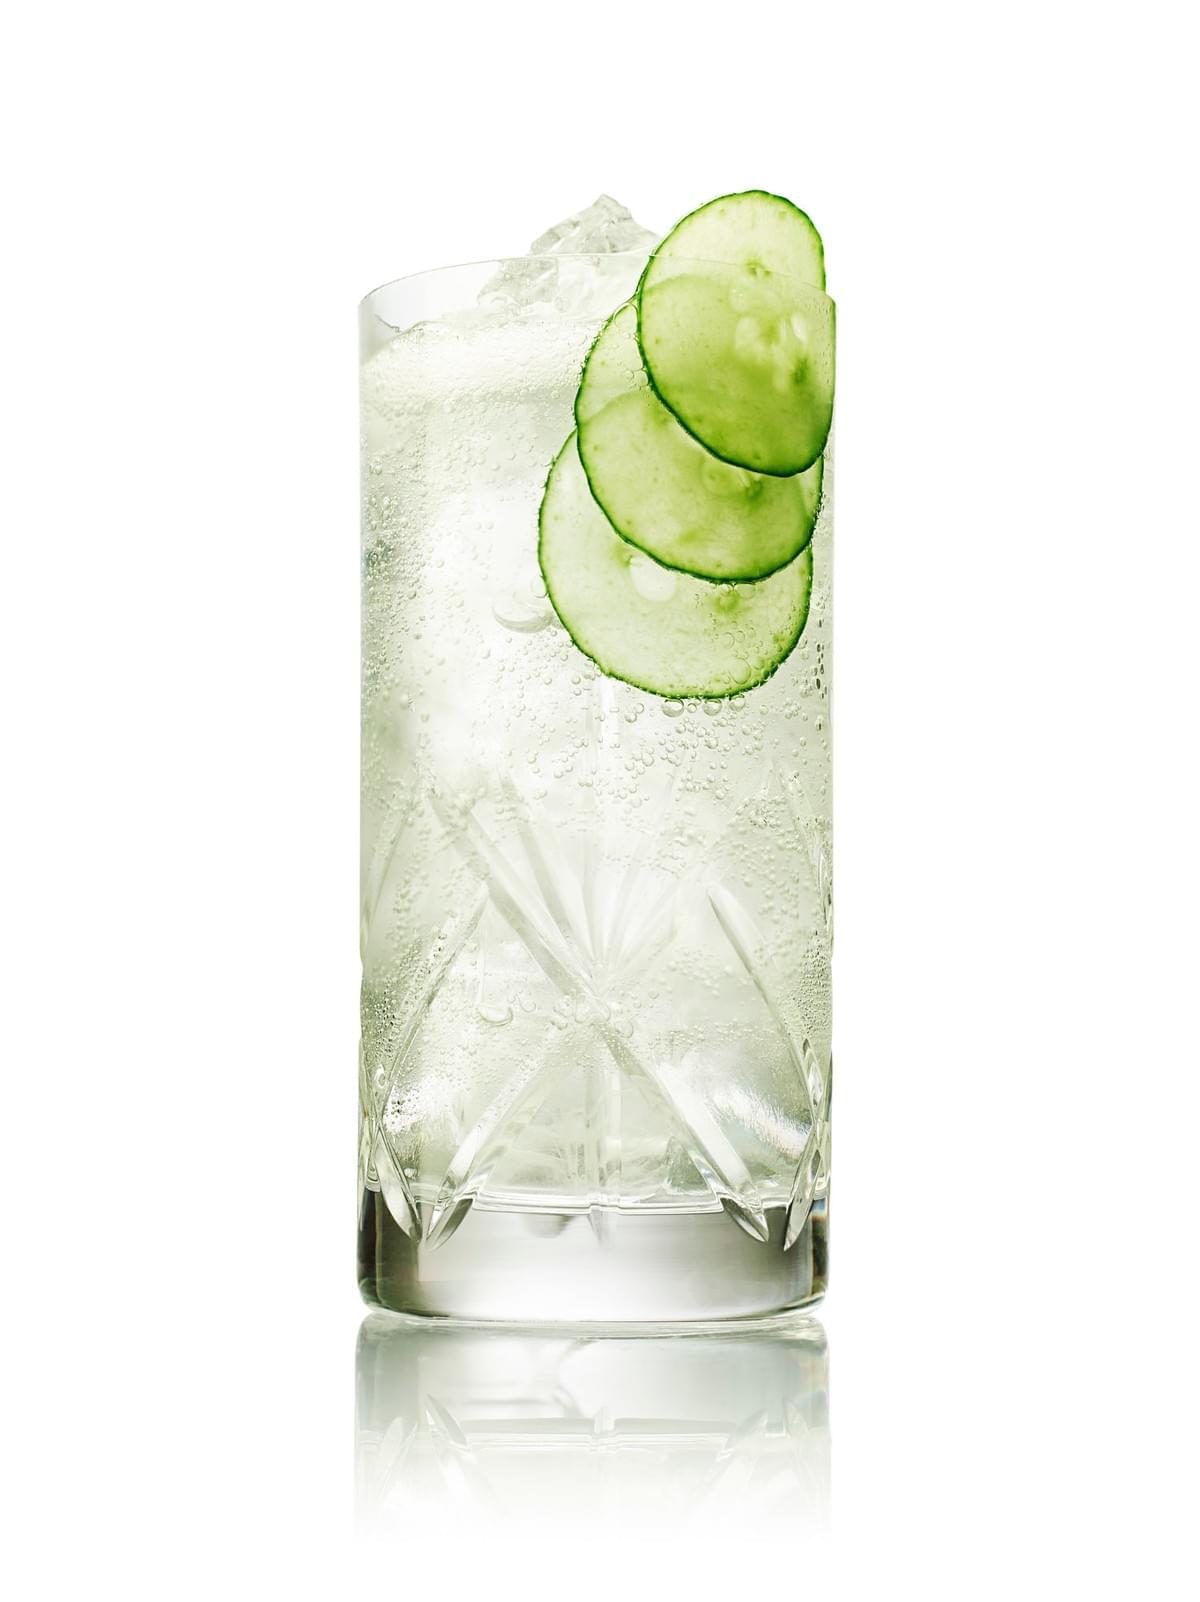 Hendricks & Tonic